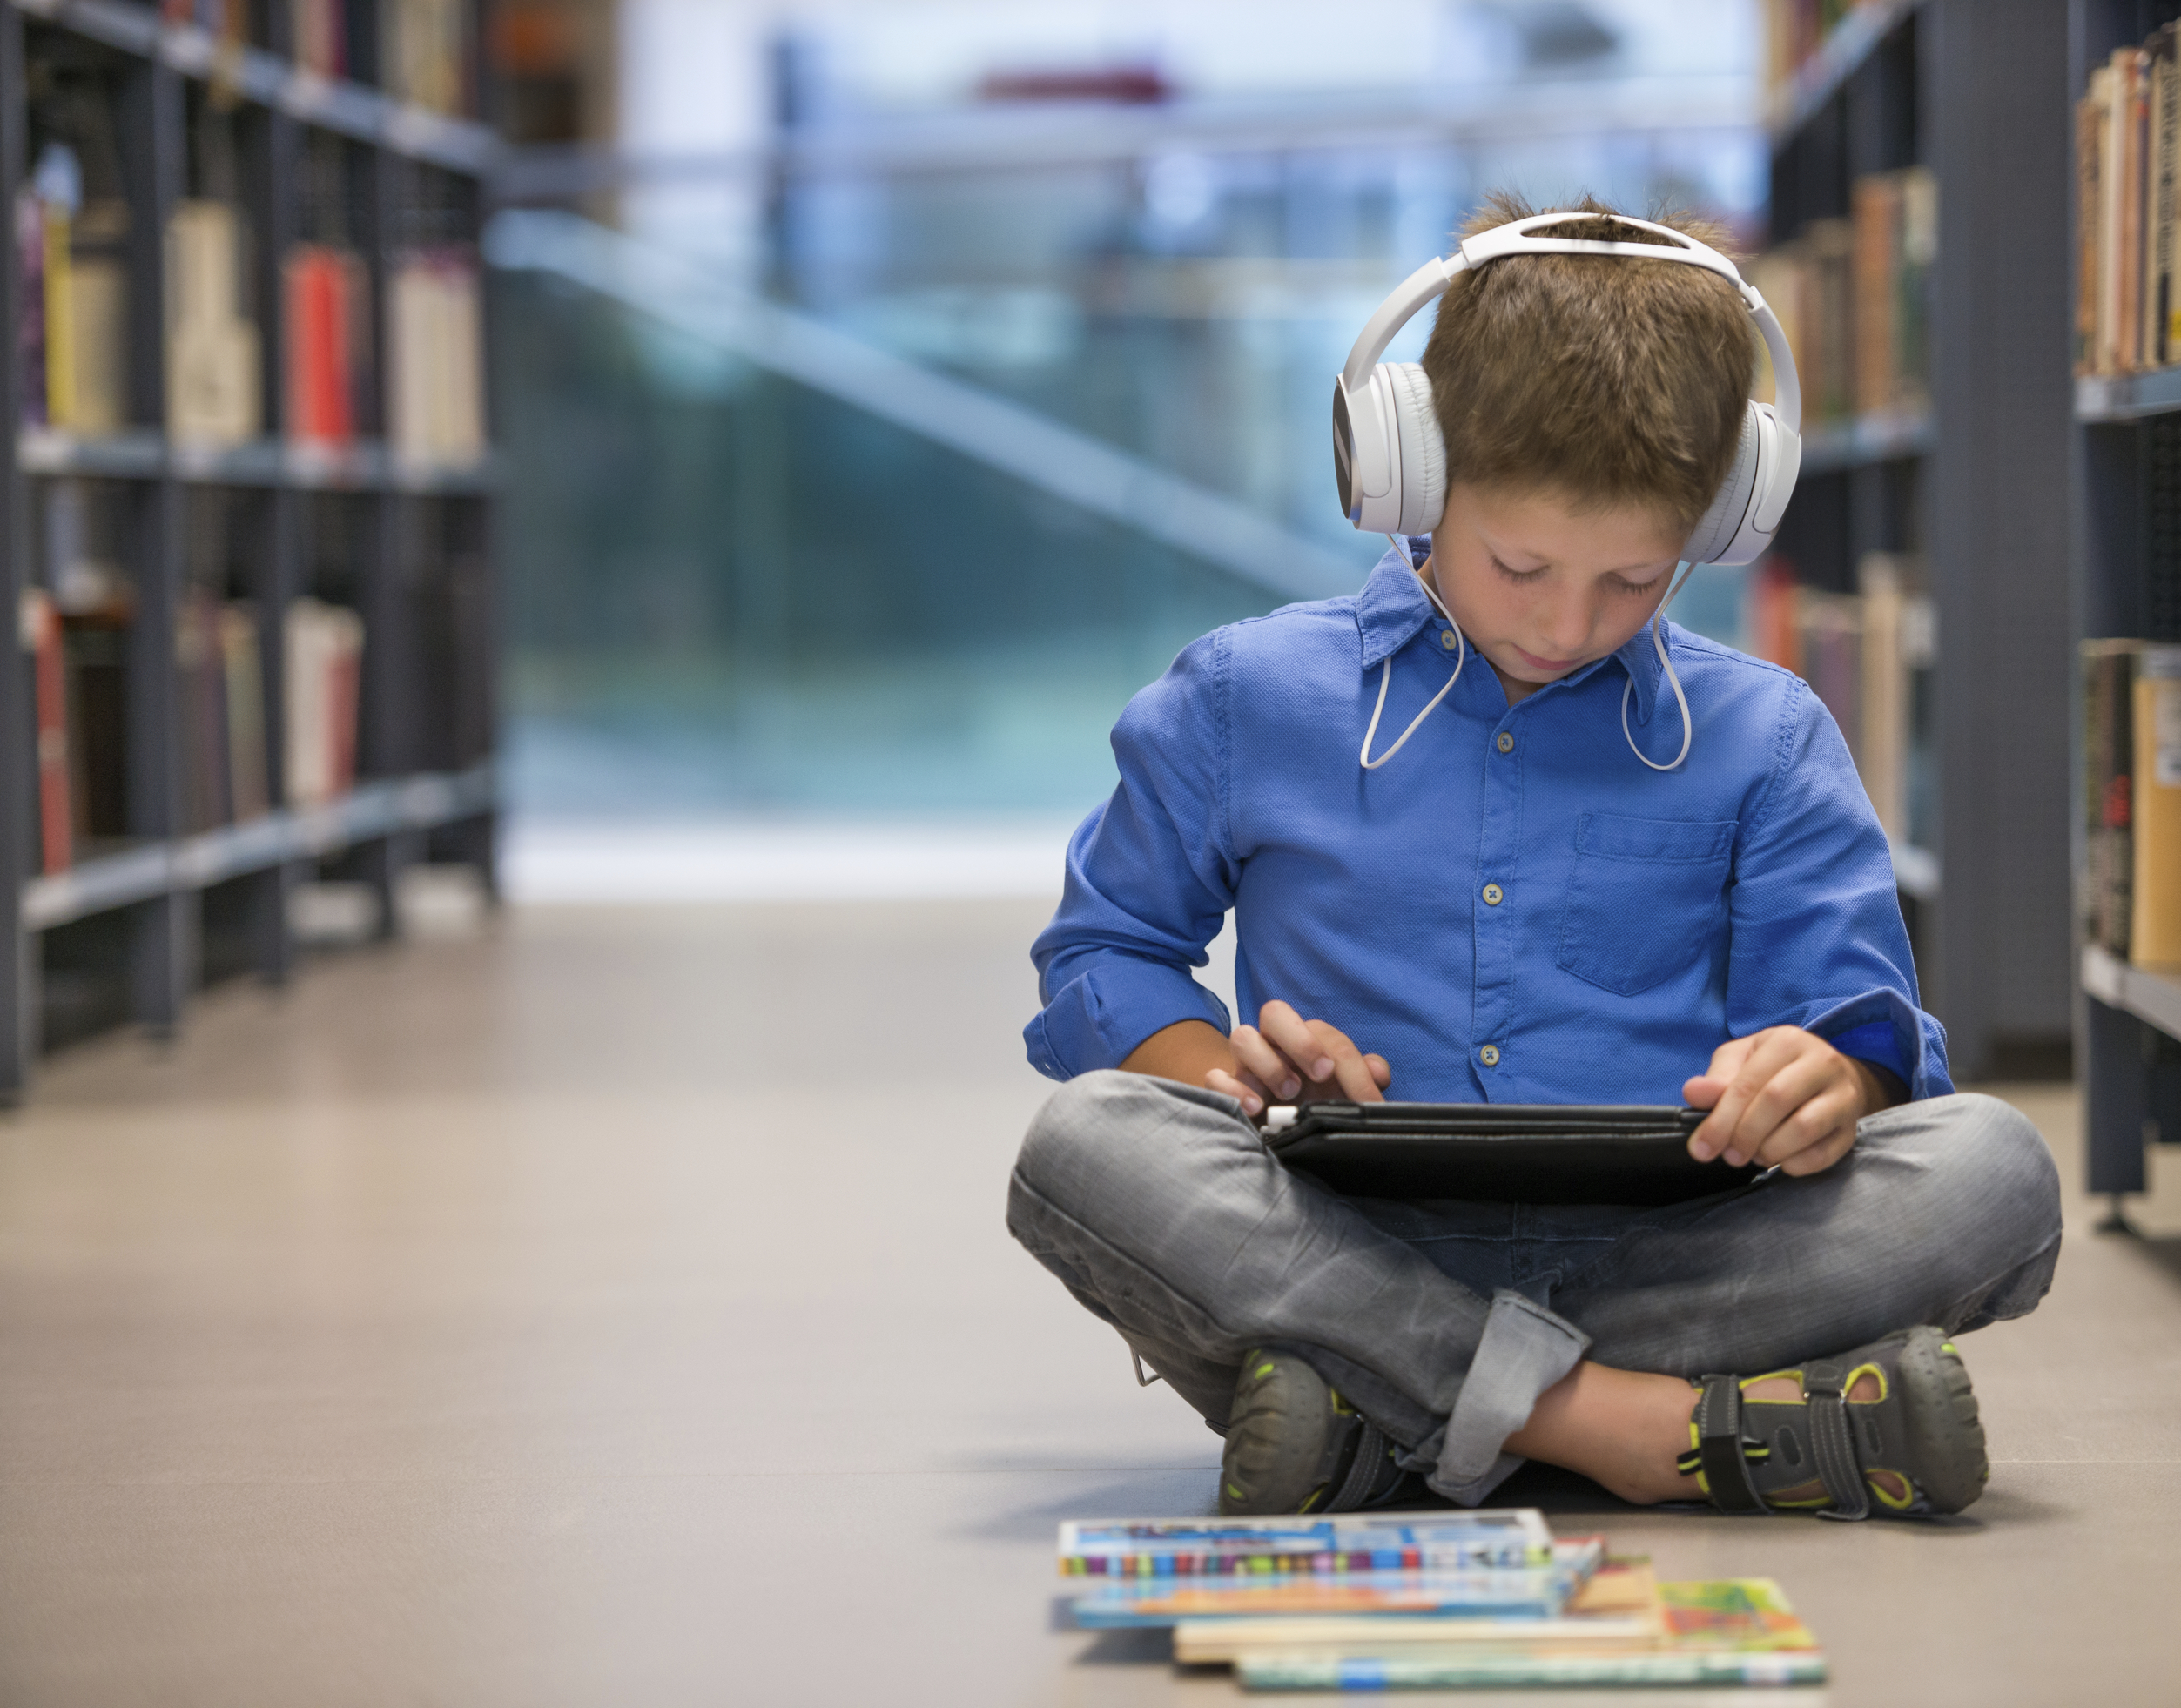 graphic: young boy listening to an audio book